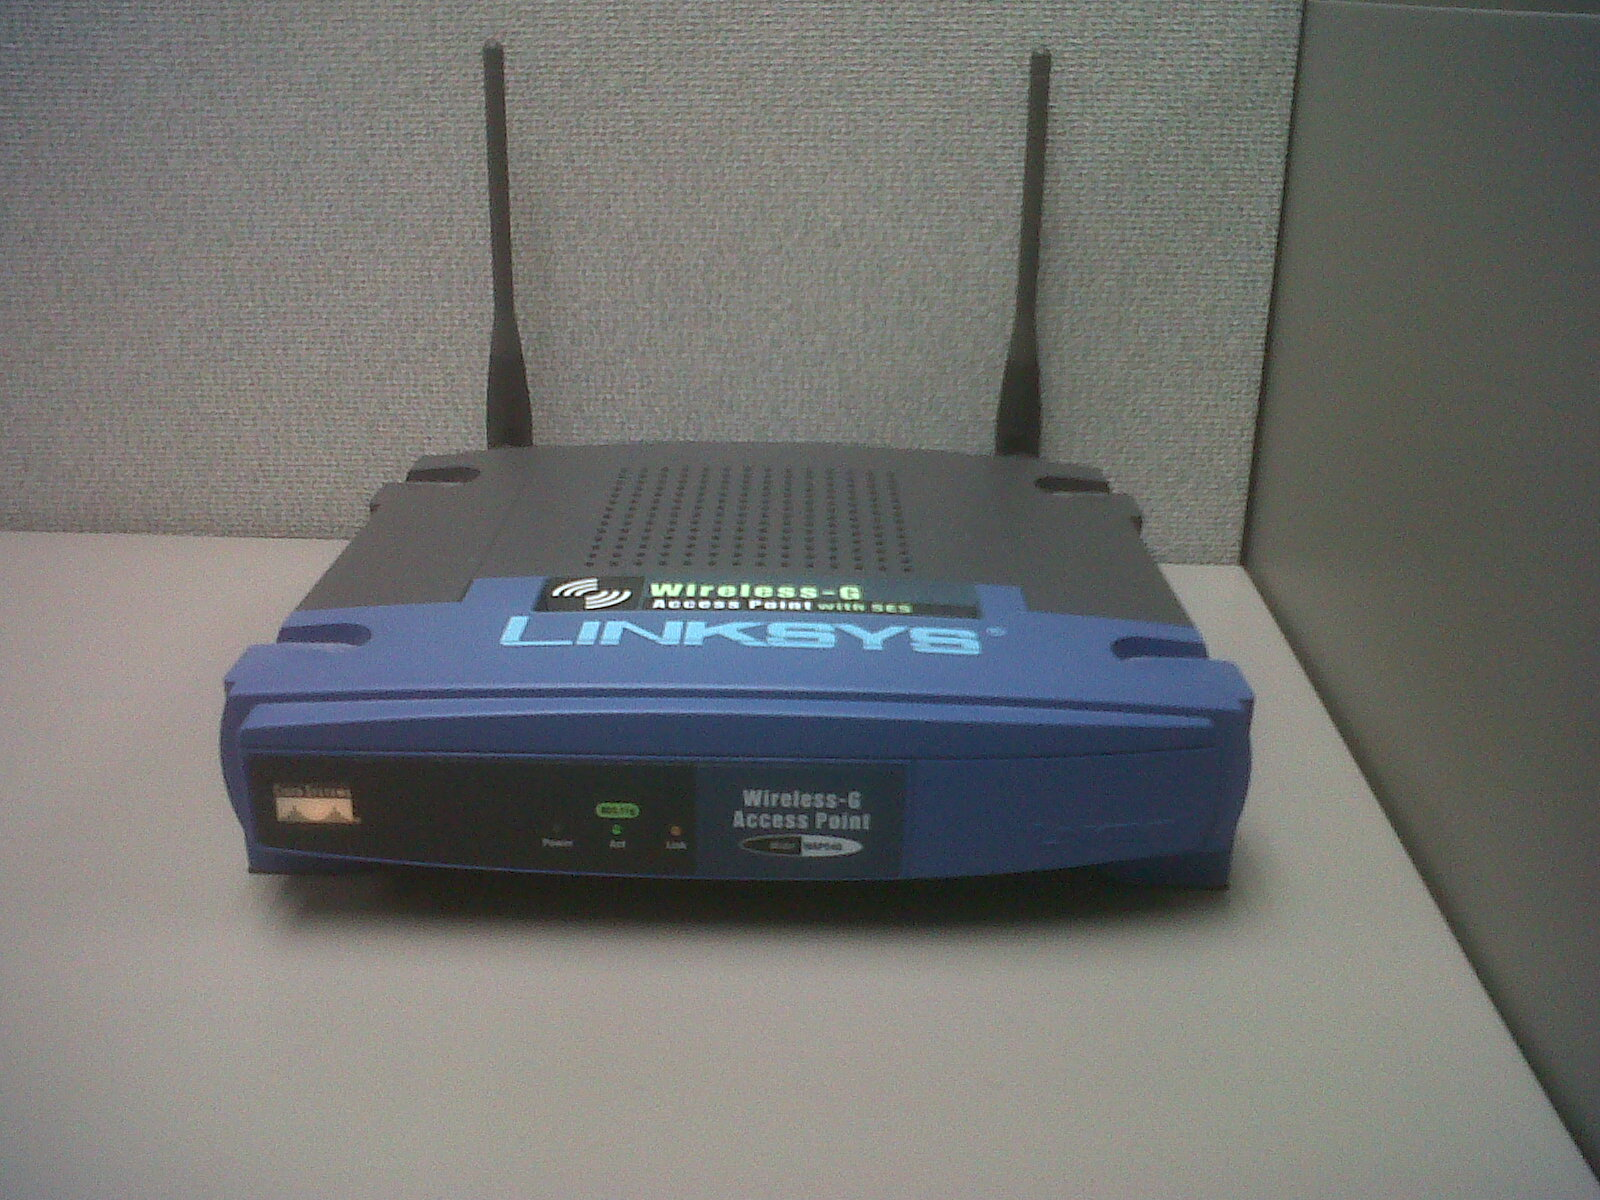 Difference Between Access Point and Extender